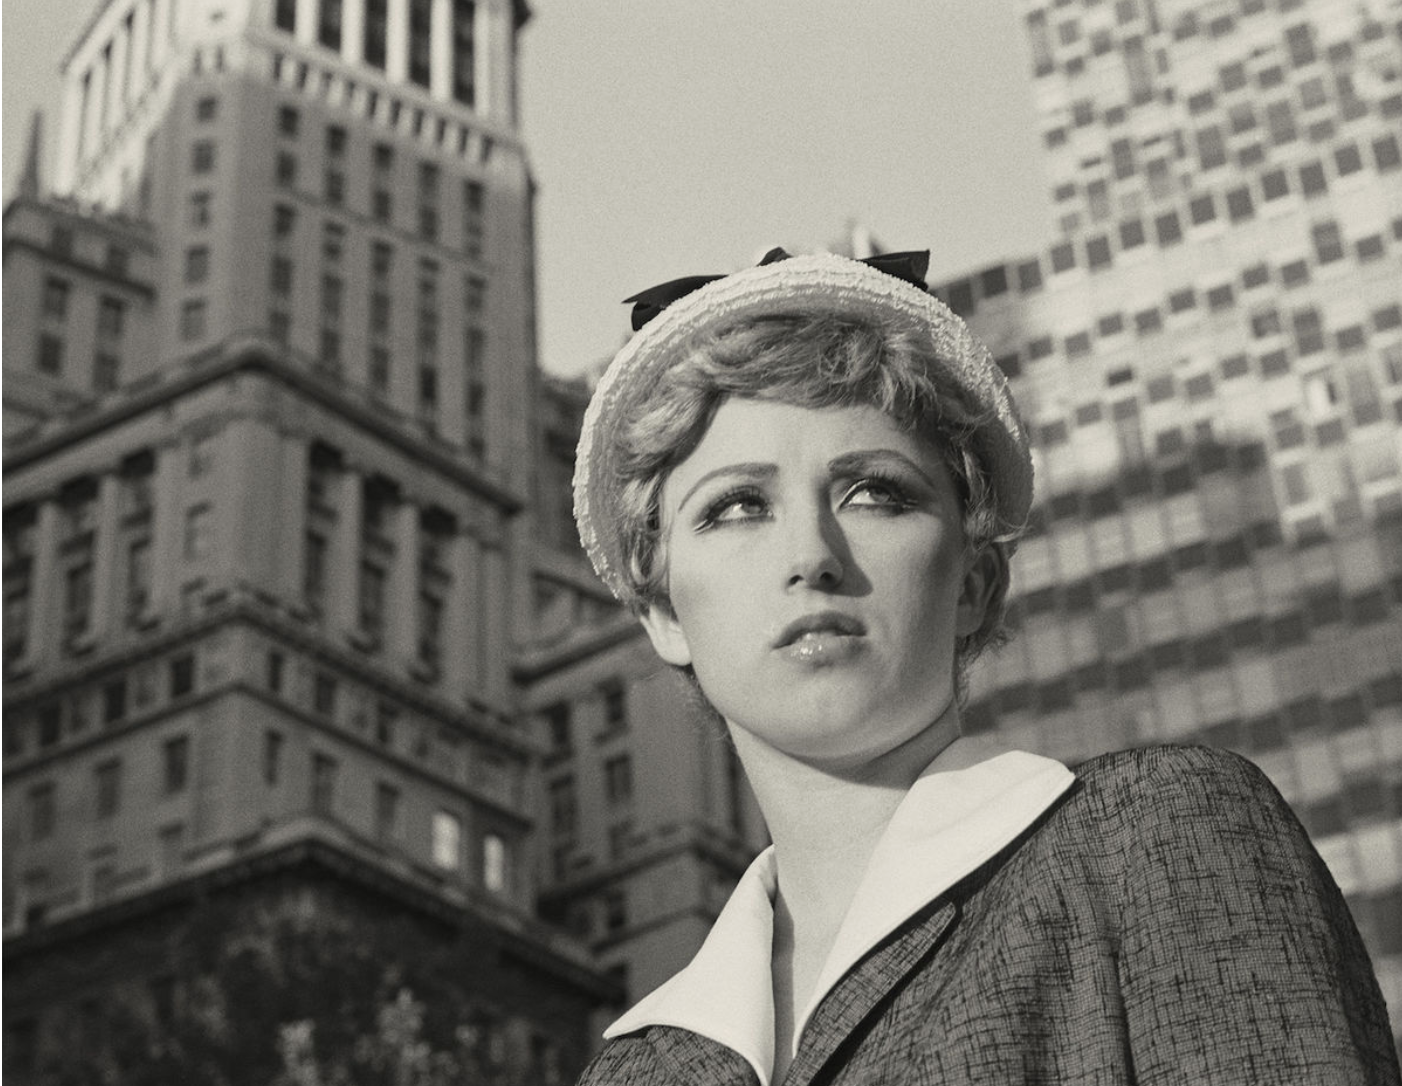 Cindy Sherman,  Untitled Film Still #21 , 1978. Courtesy of the artist and Metro Pictures, New York.